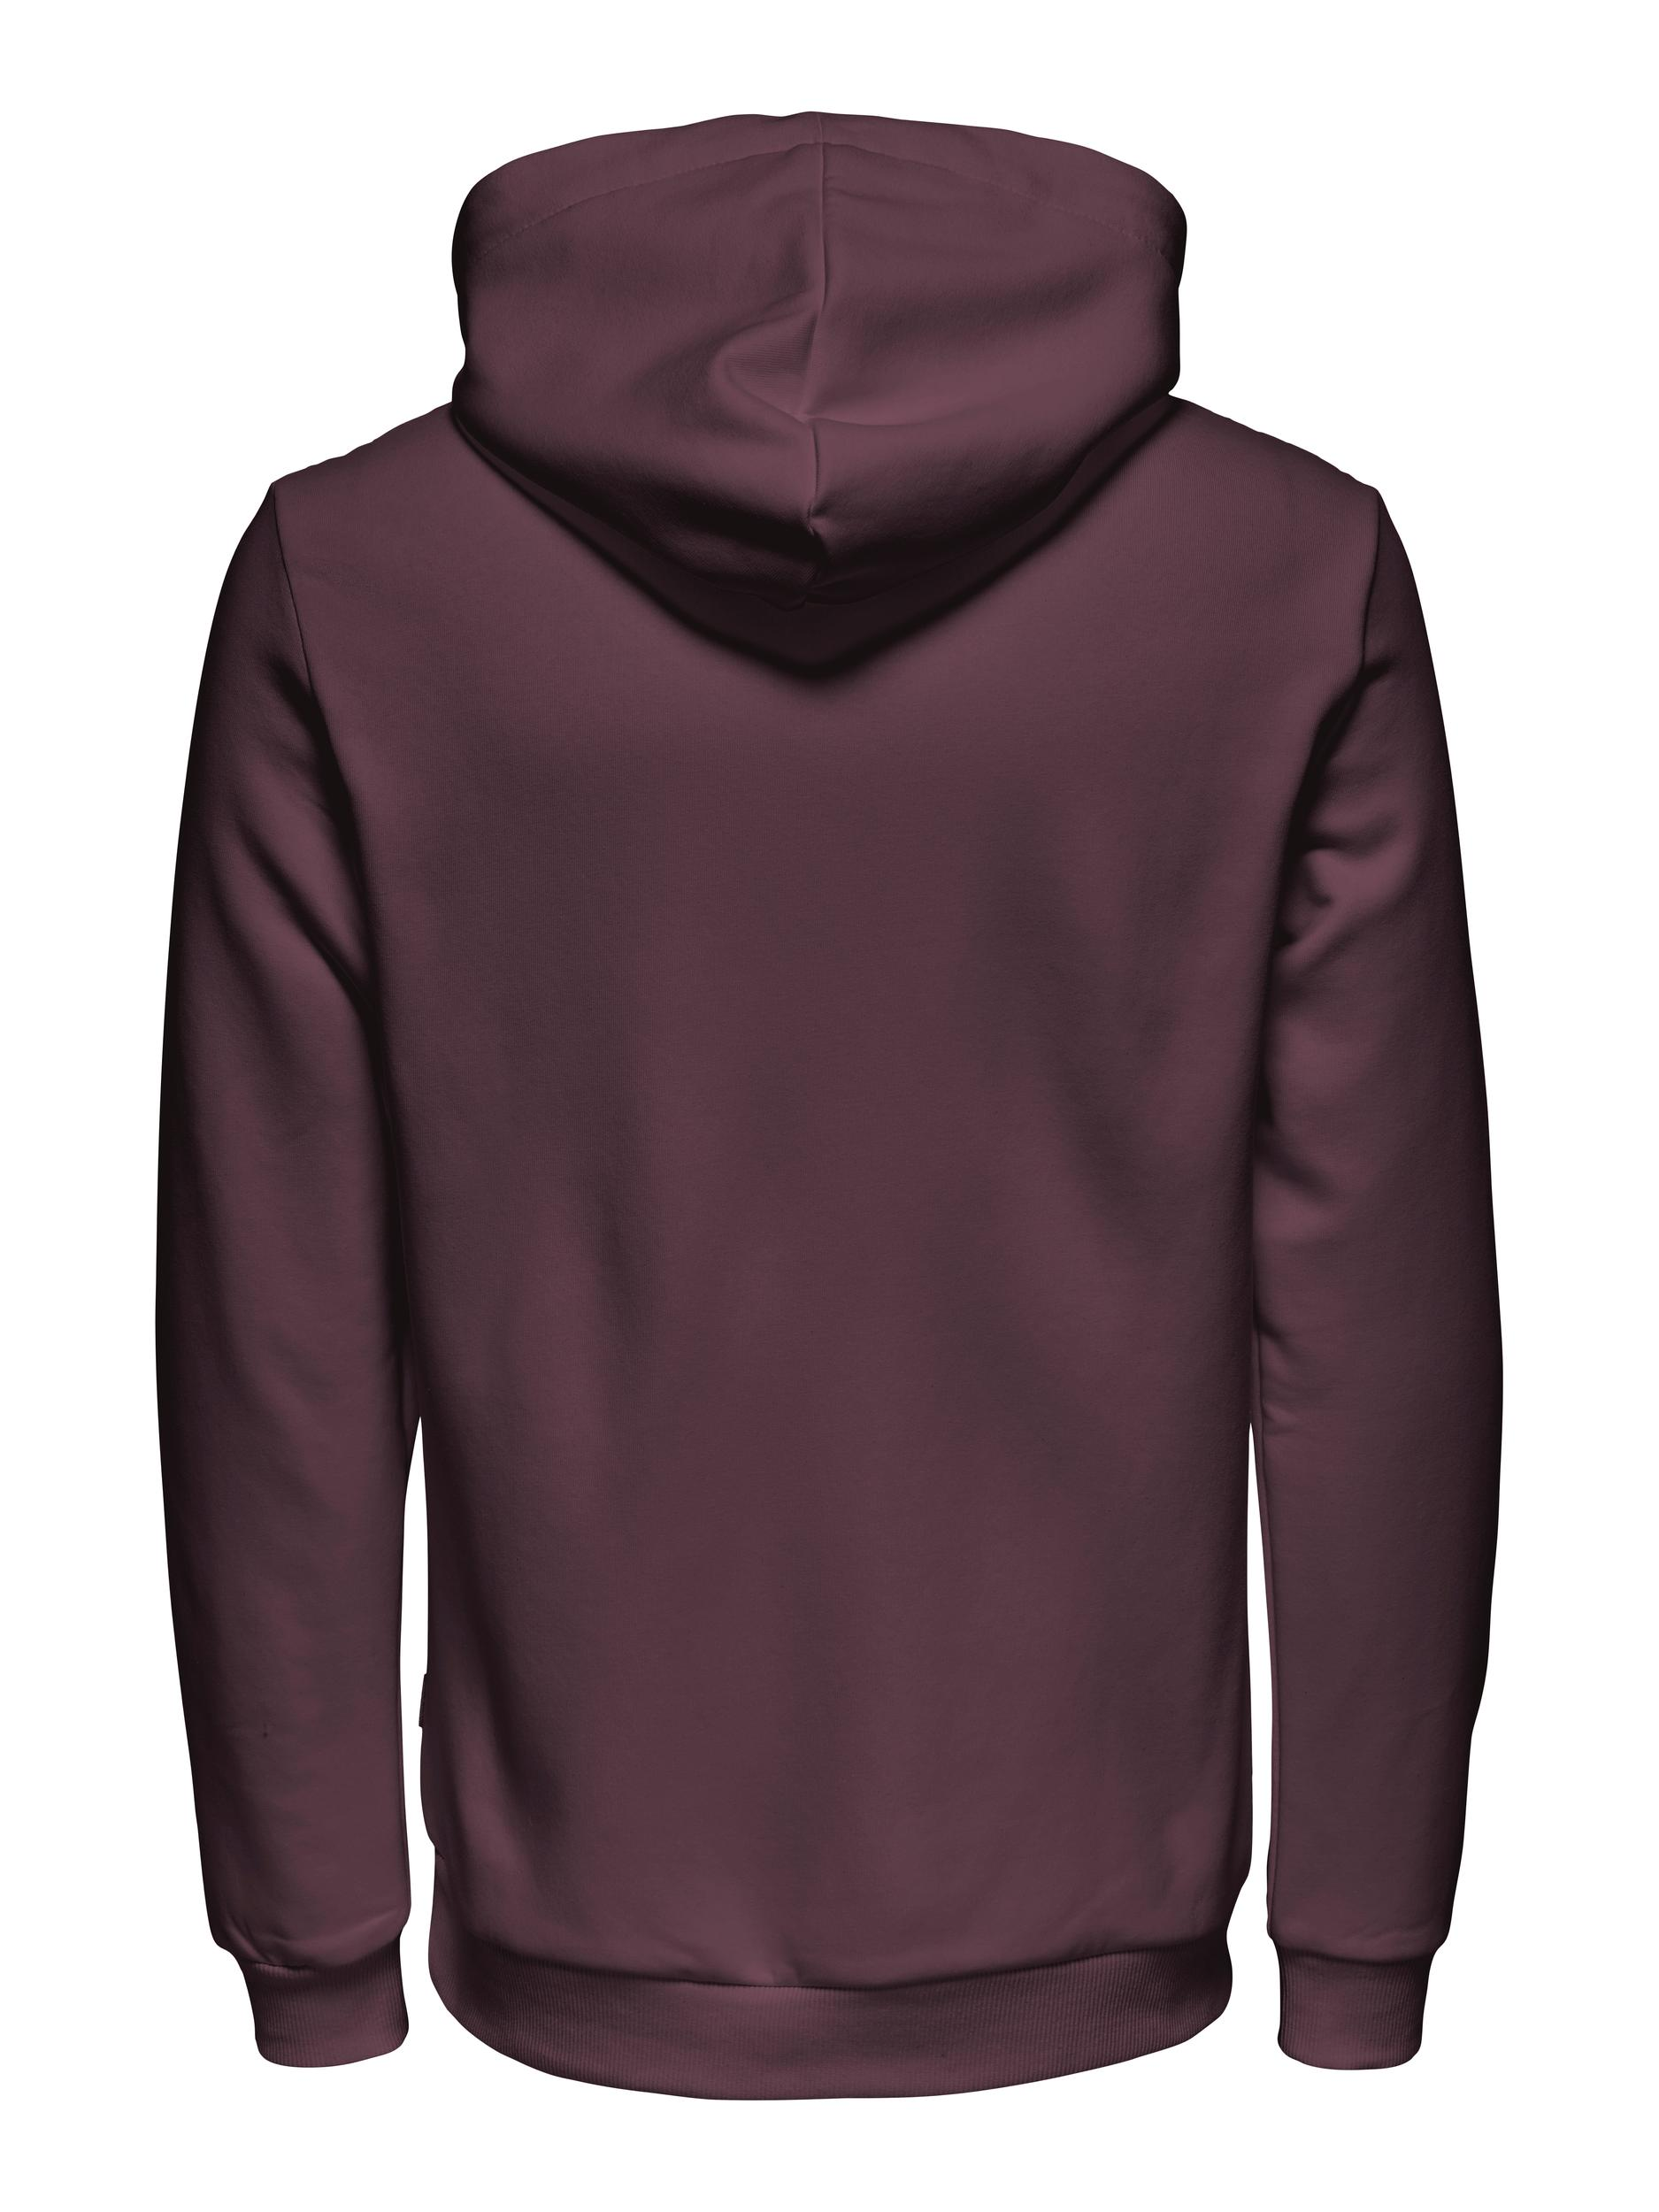 Only & Sons Ceres Life hoodie, fudge, small